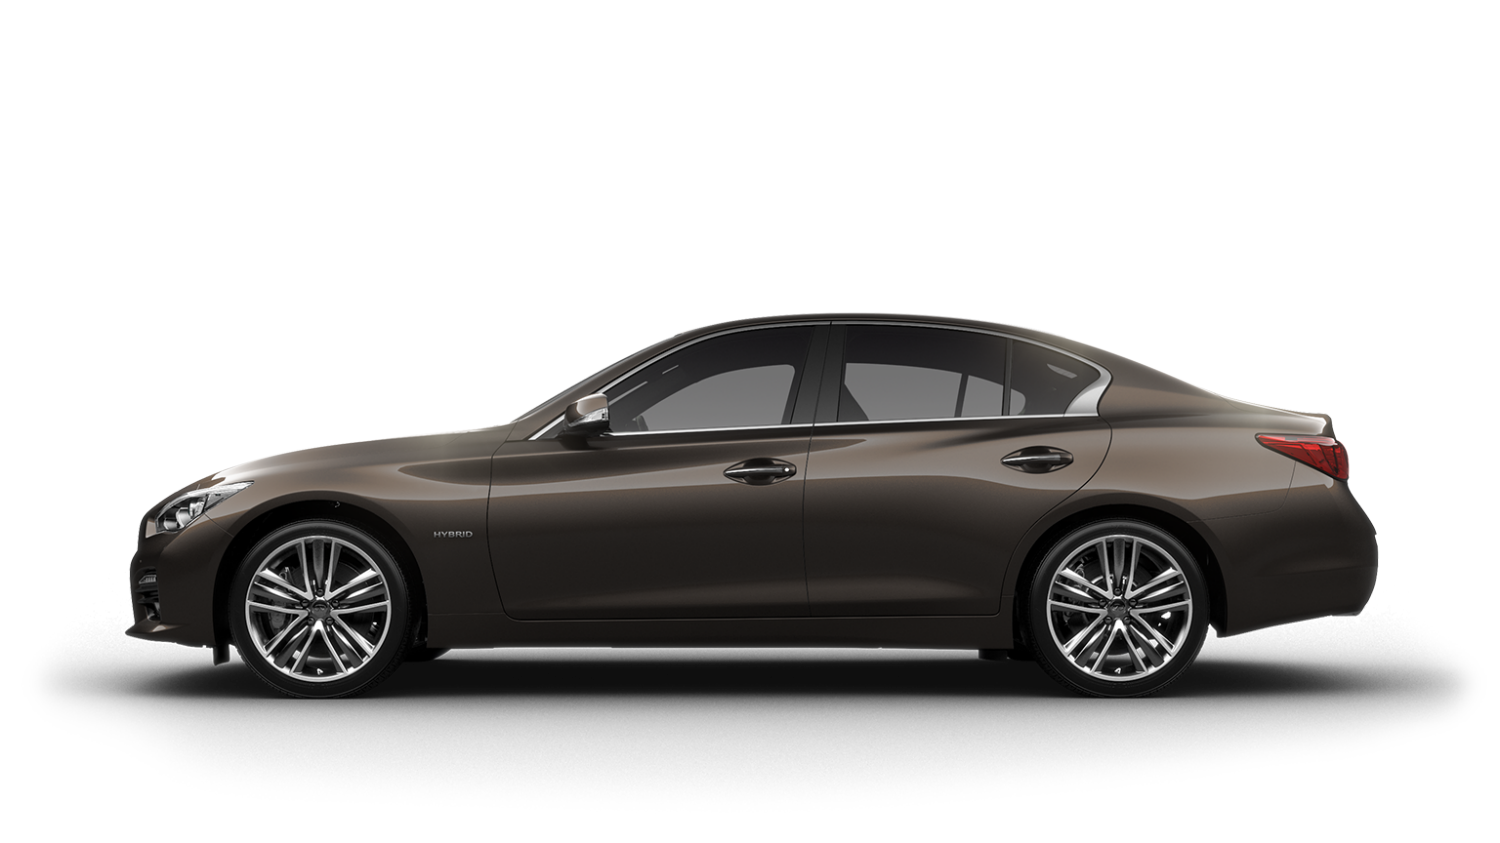 New Vehicles | Infiniti South Africa